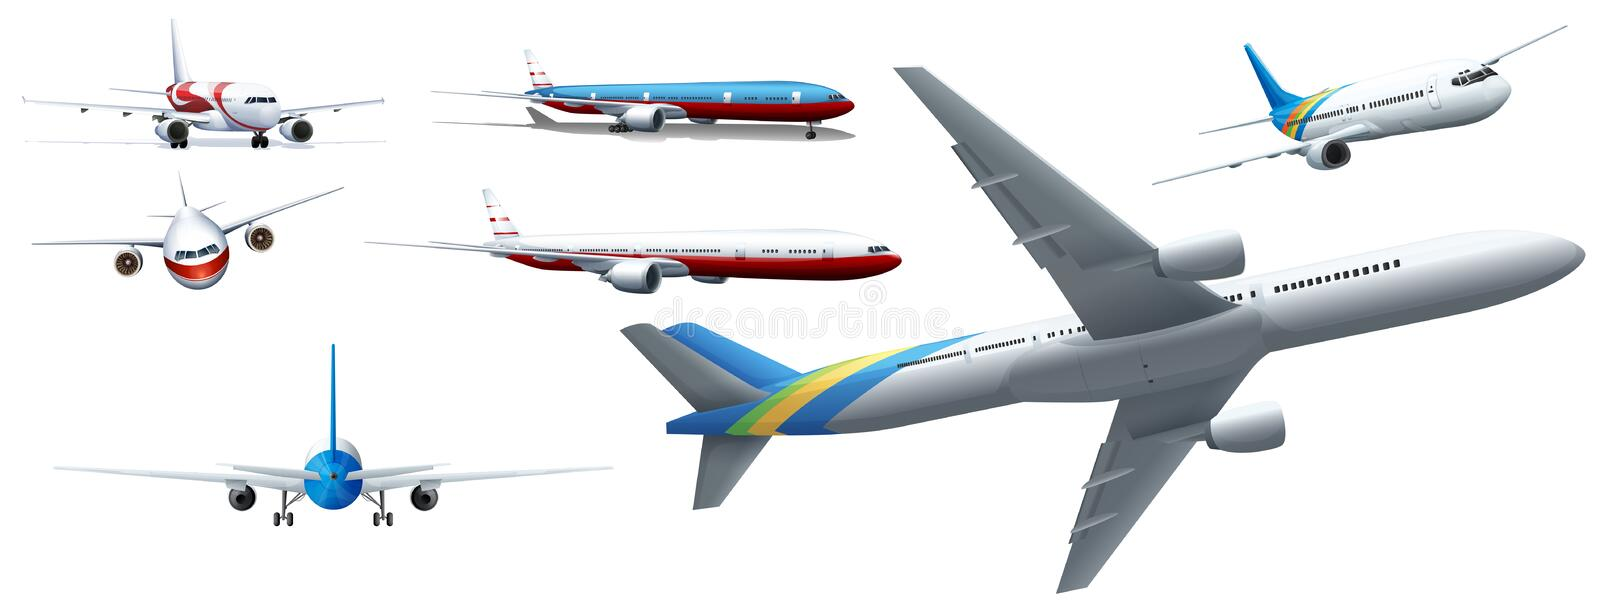 Different design of airplanes royalty free illustration